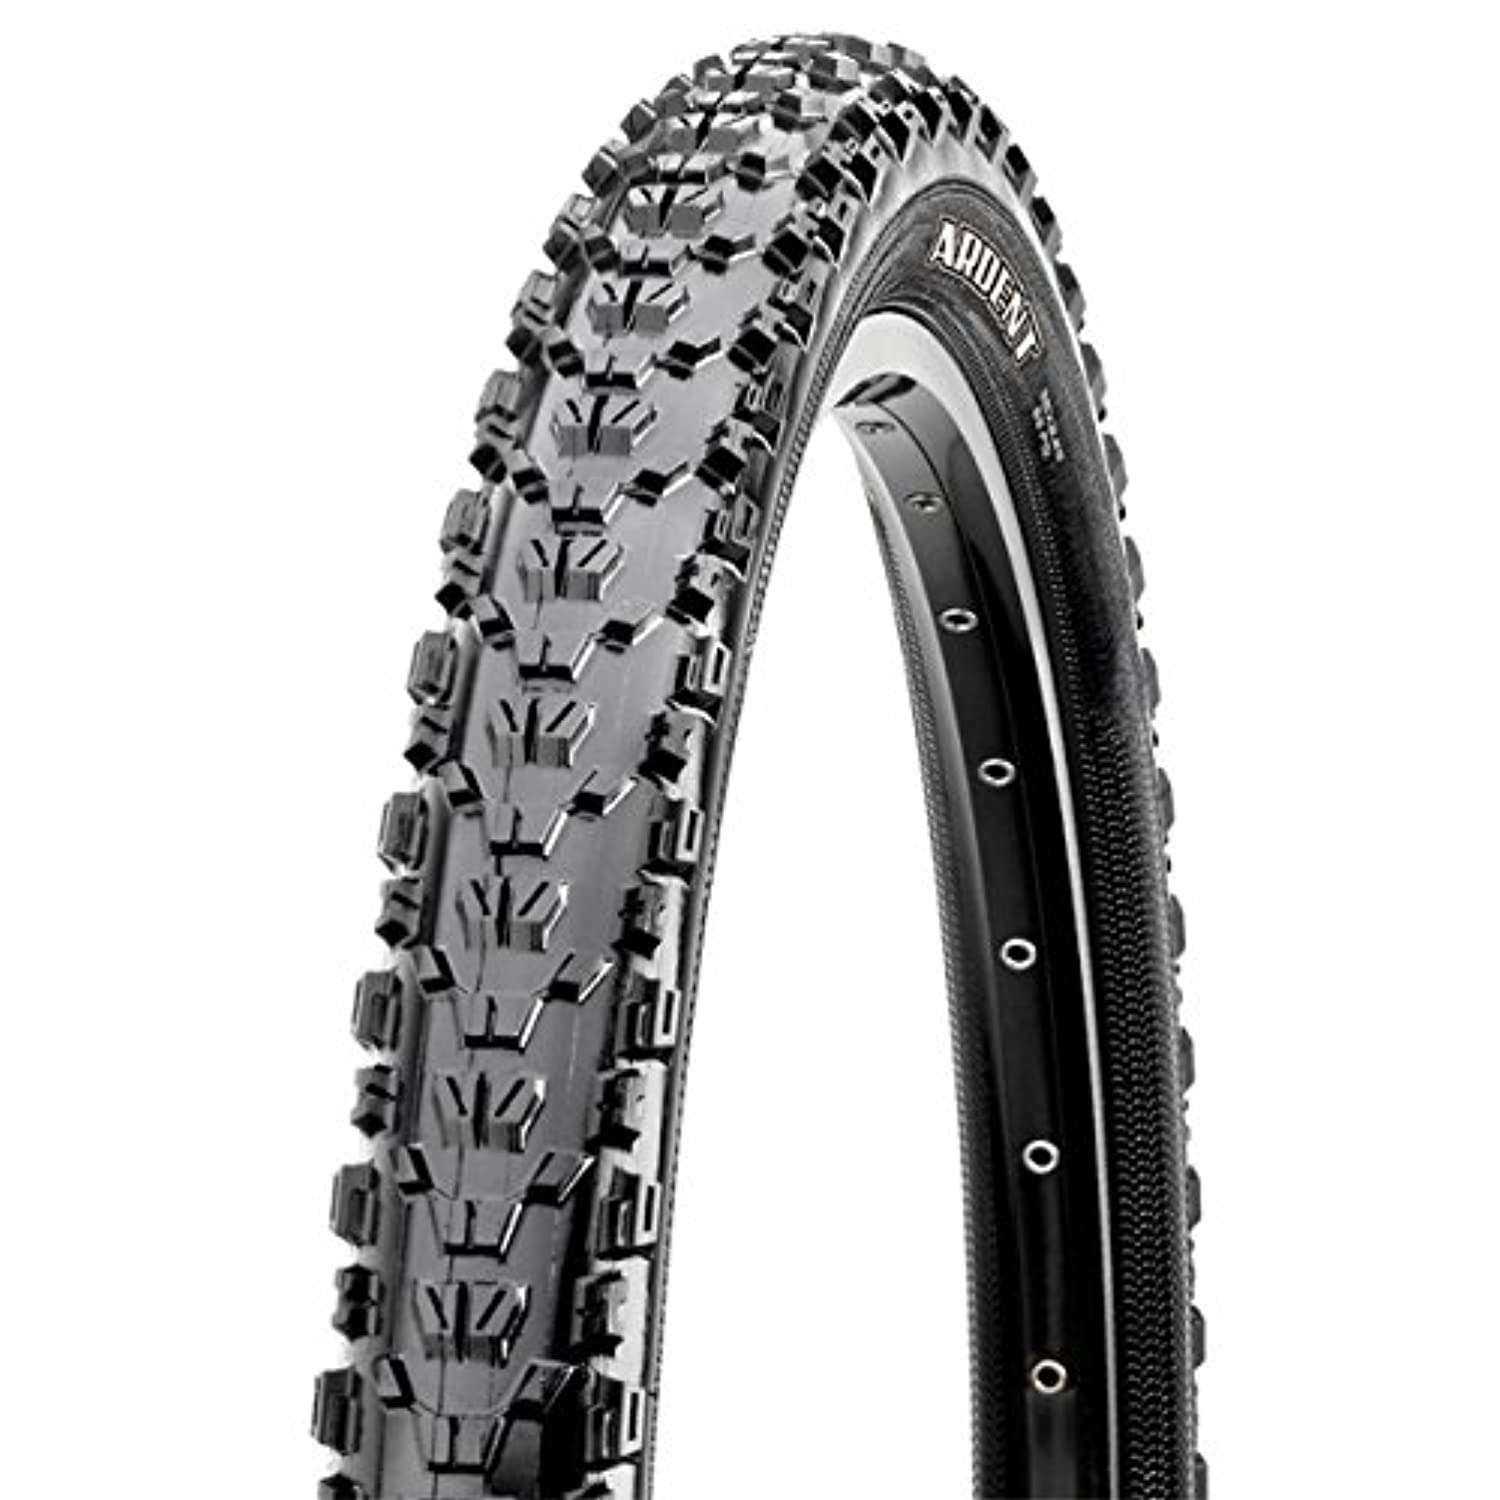 Maxxis Ardent K Exo 27.5